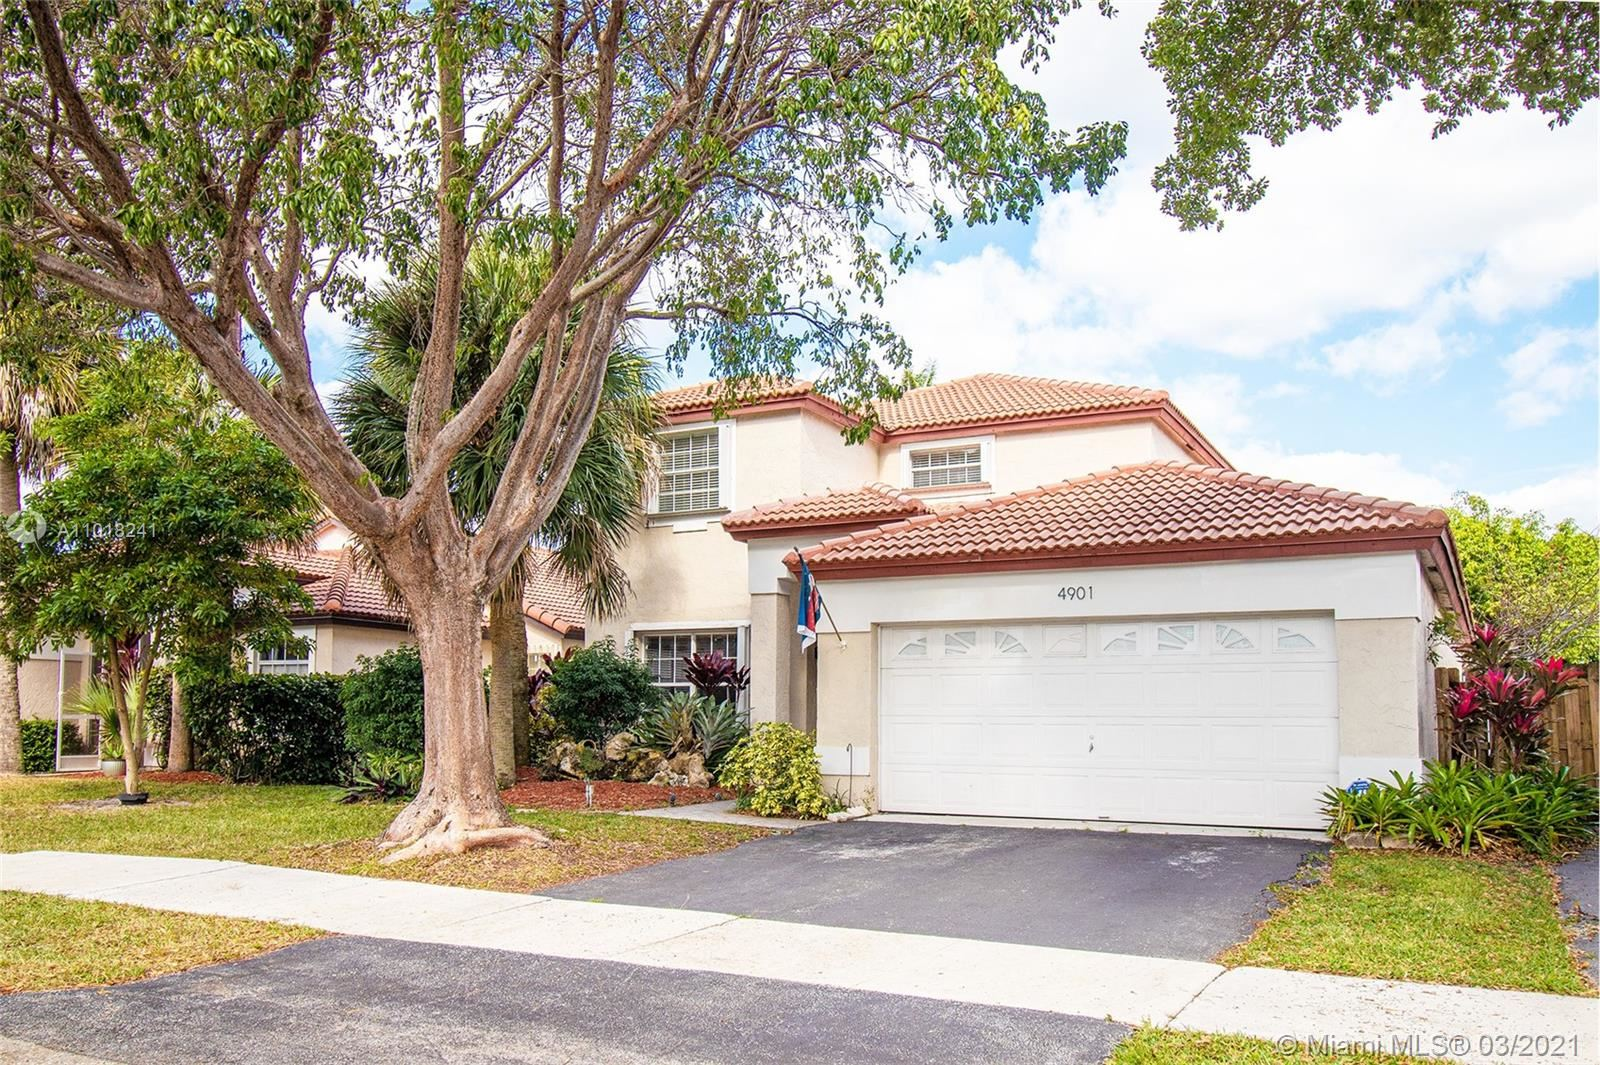 4901 NW 55th Ct, Coconut Creek, FL 33073 - #: A11018241